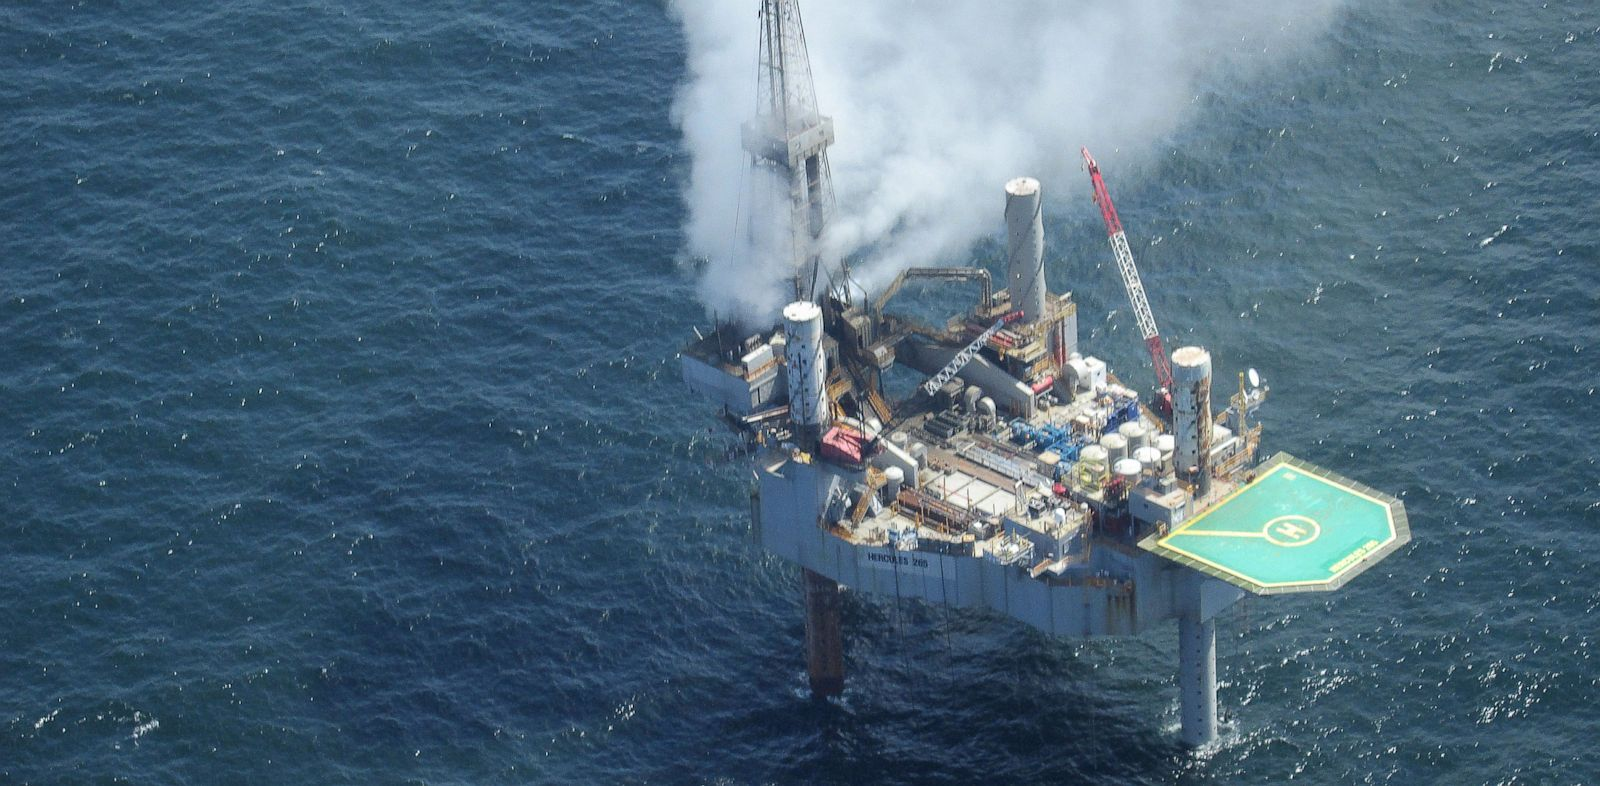 PHOTO: This photo released by the Bureau of Safety and Environmental Enforcement shows natural gas spewing from the Hercules 265 drilling rig in the Gulf of Mexico off the coast of Louisiana, Tuesday, July 23, 2013.